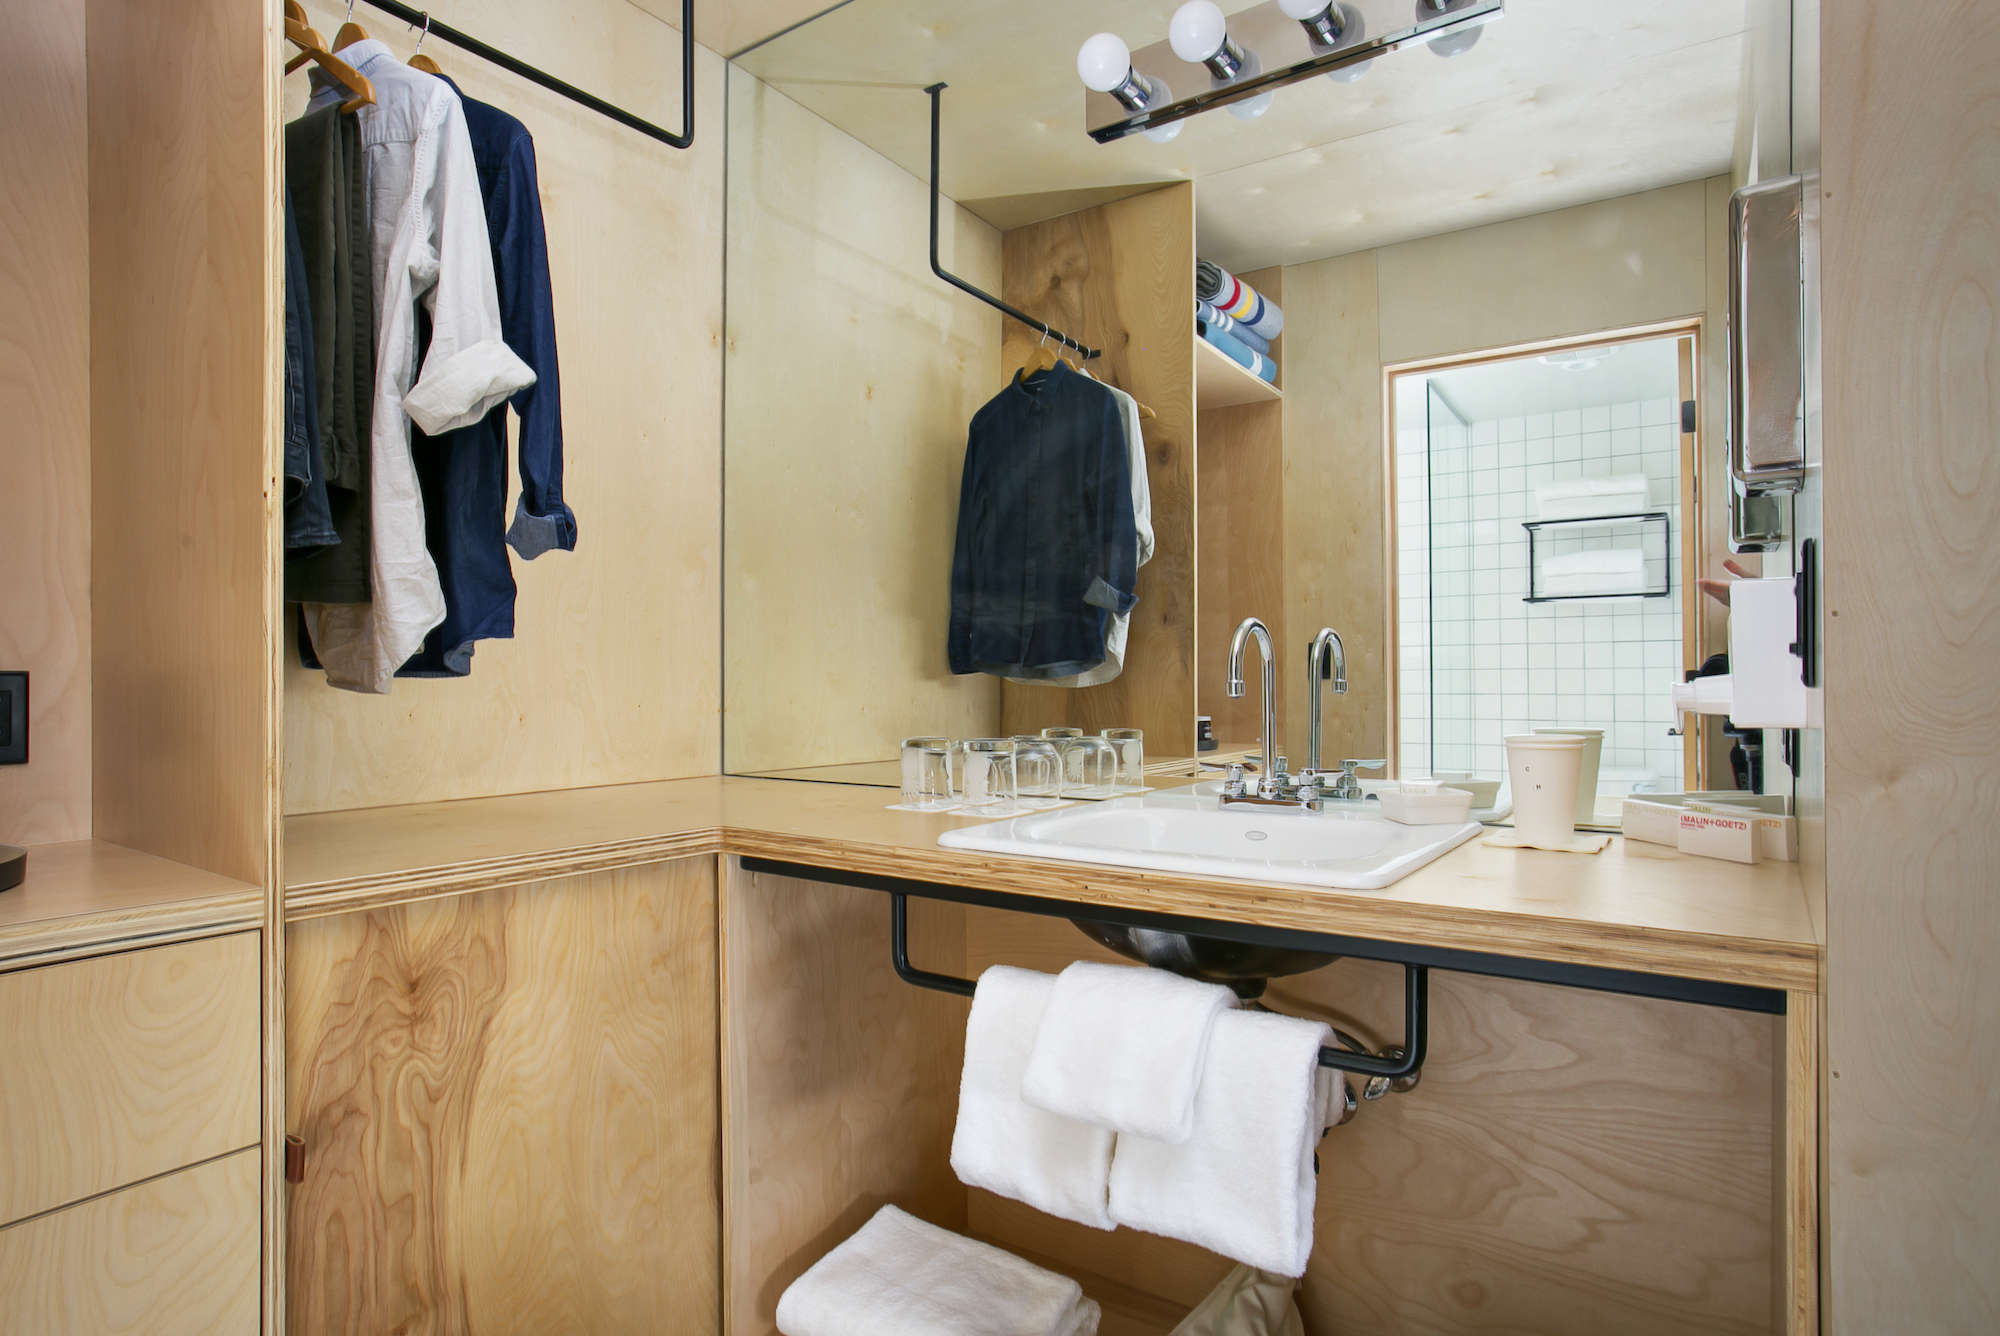 Bathroom of the Week: An Economical Plywood Bath in Tahoe